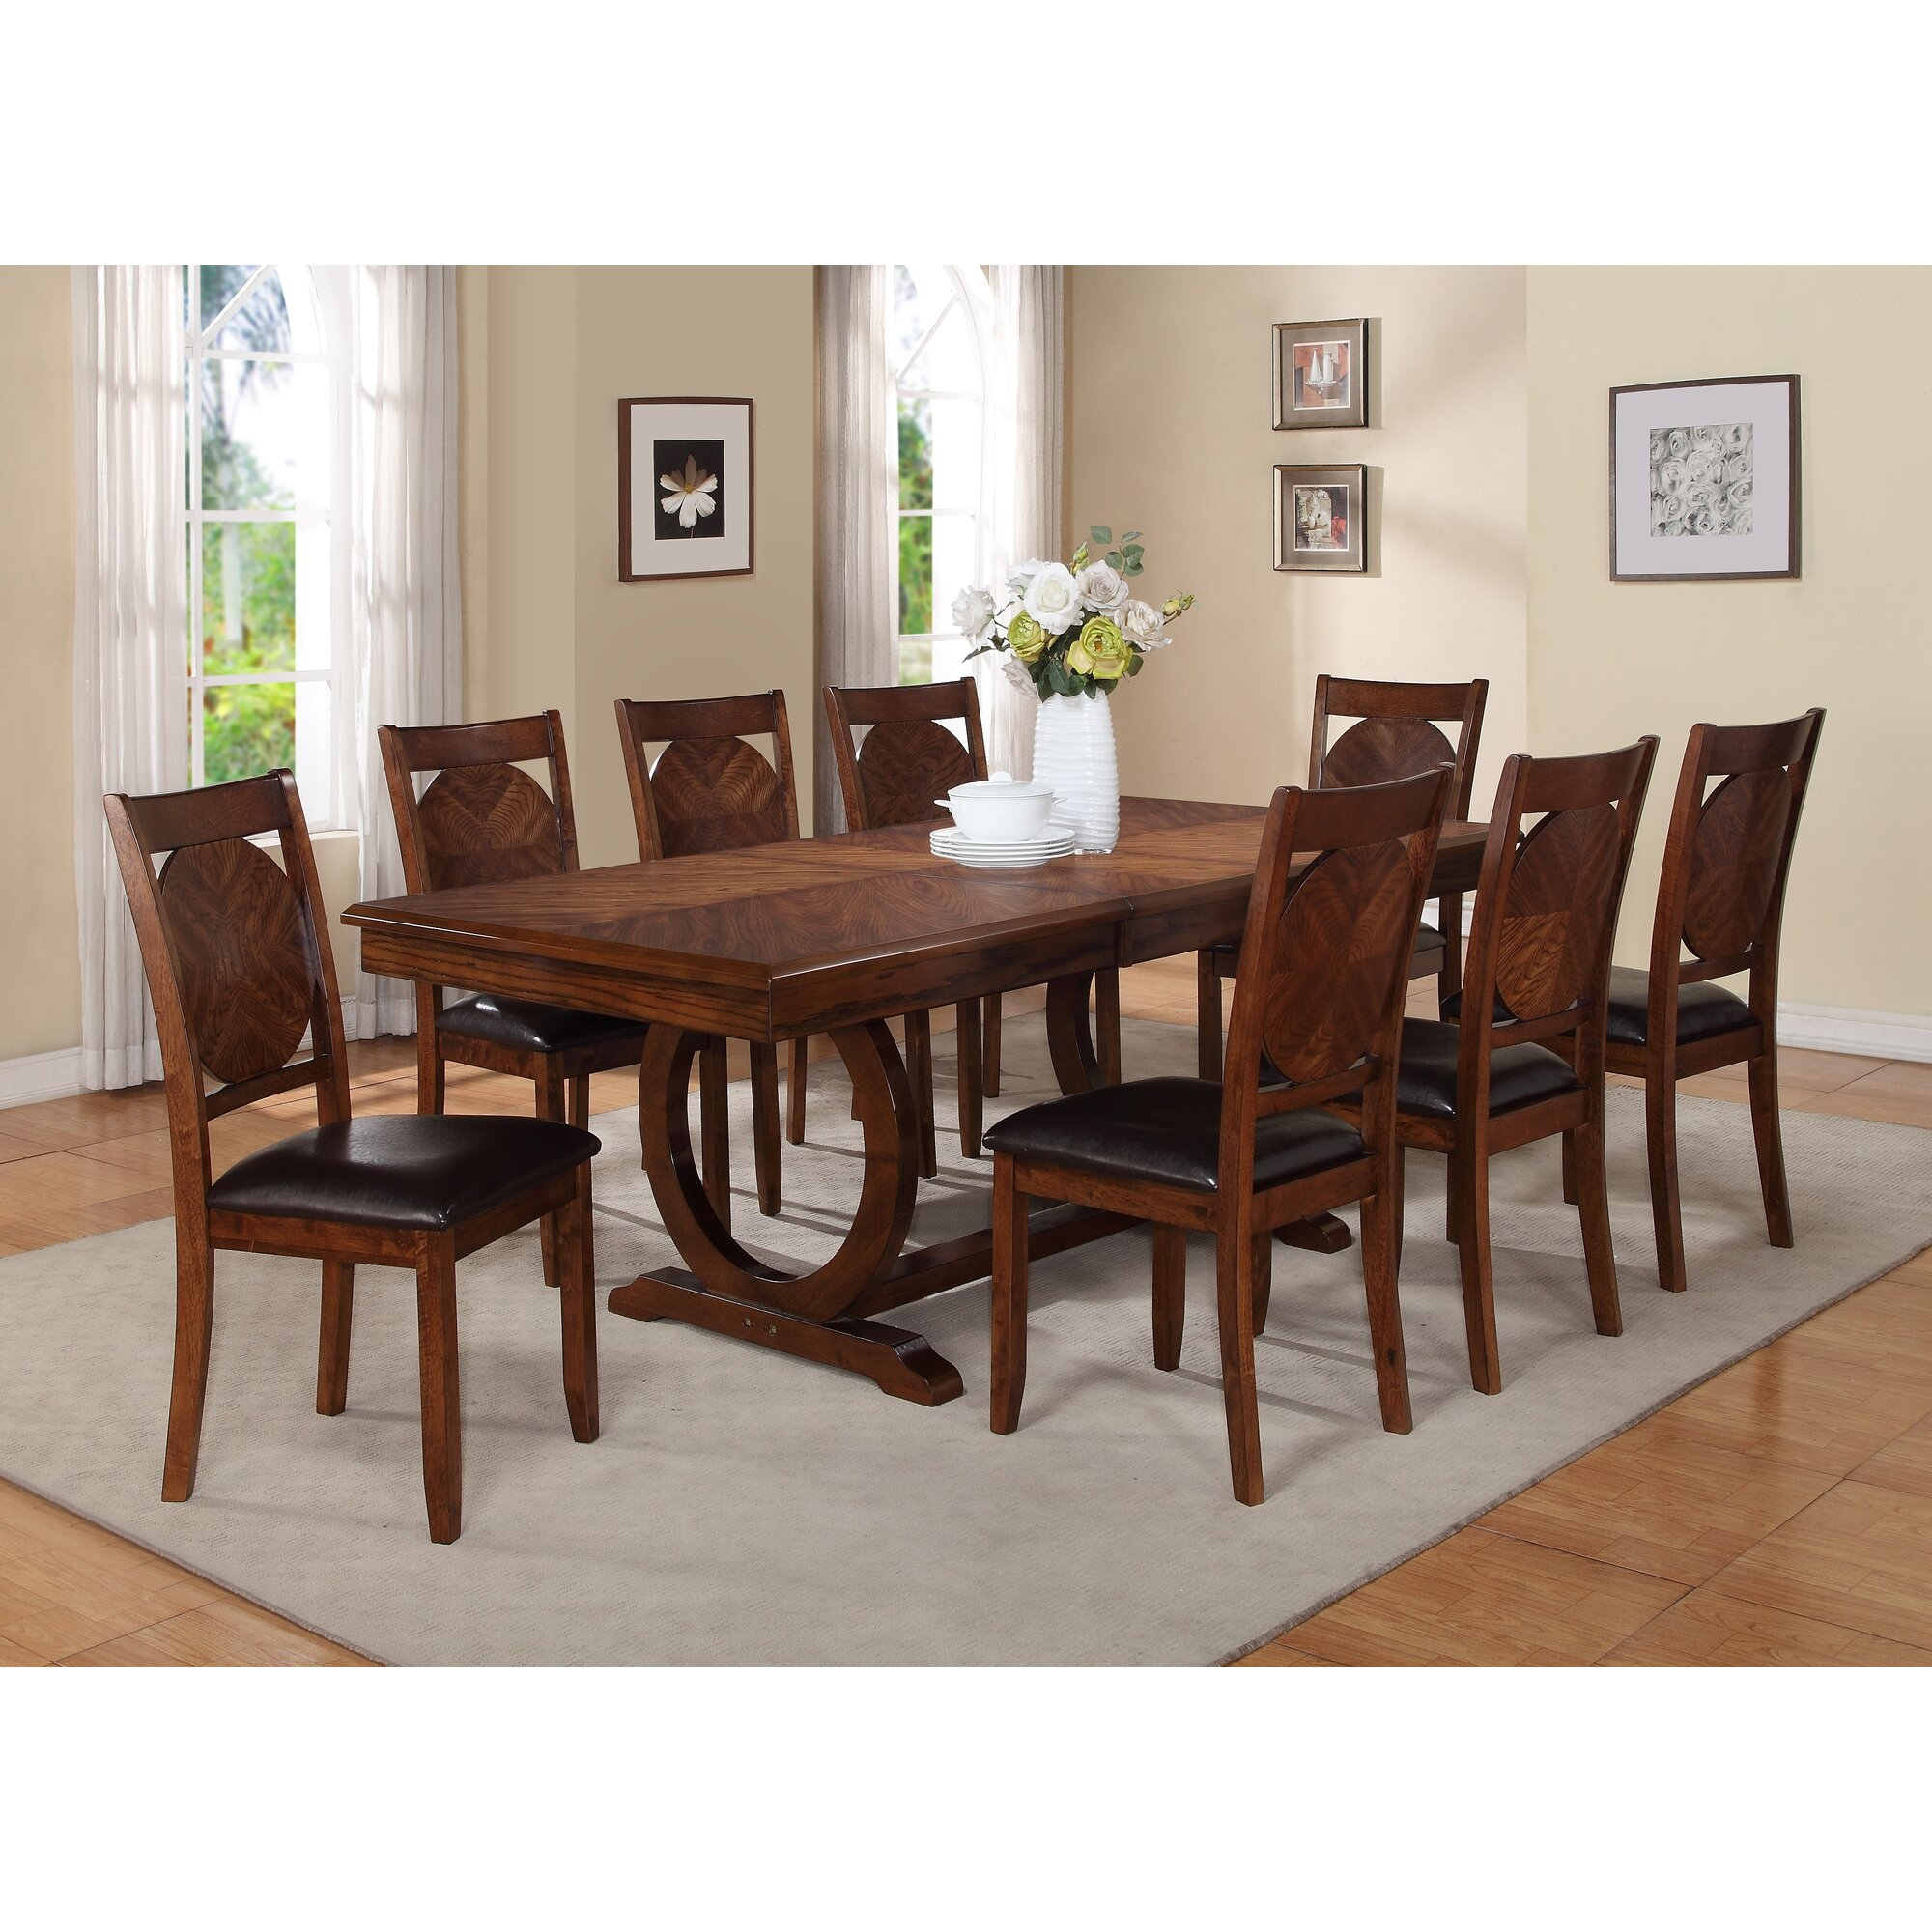 Extending Dining Room Table World Menagerie Kapoor Extendable Dining Table & Reviews  Wayfair